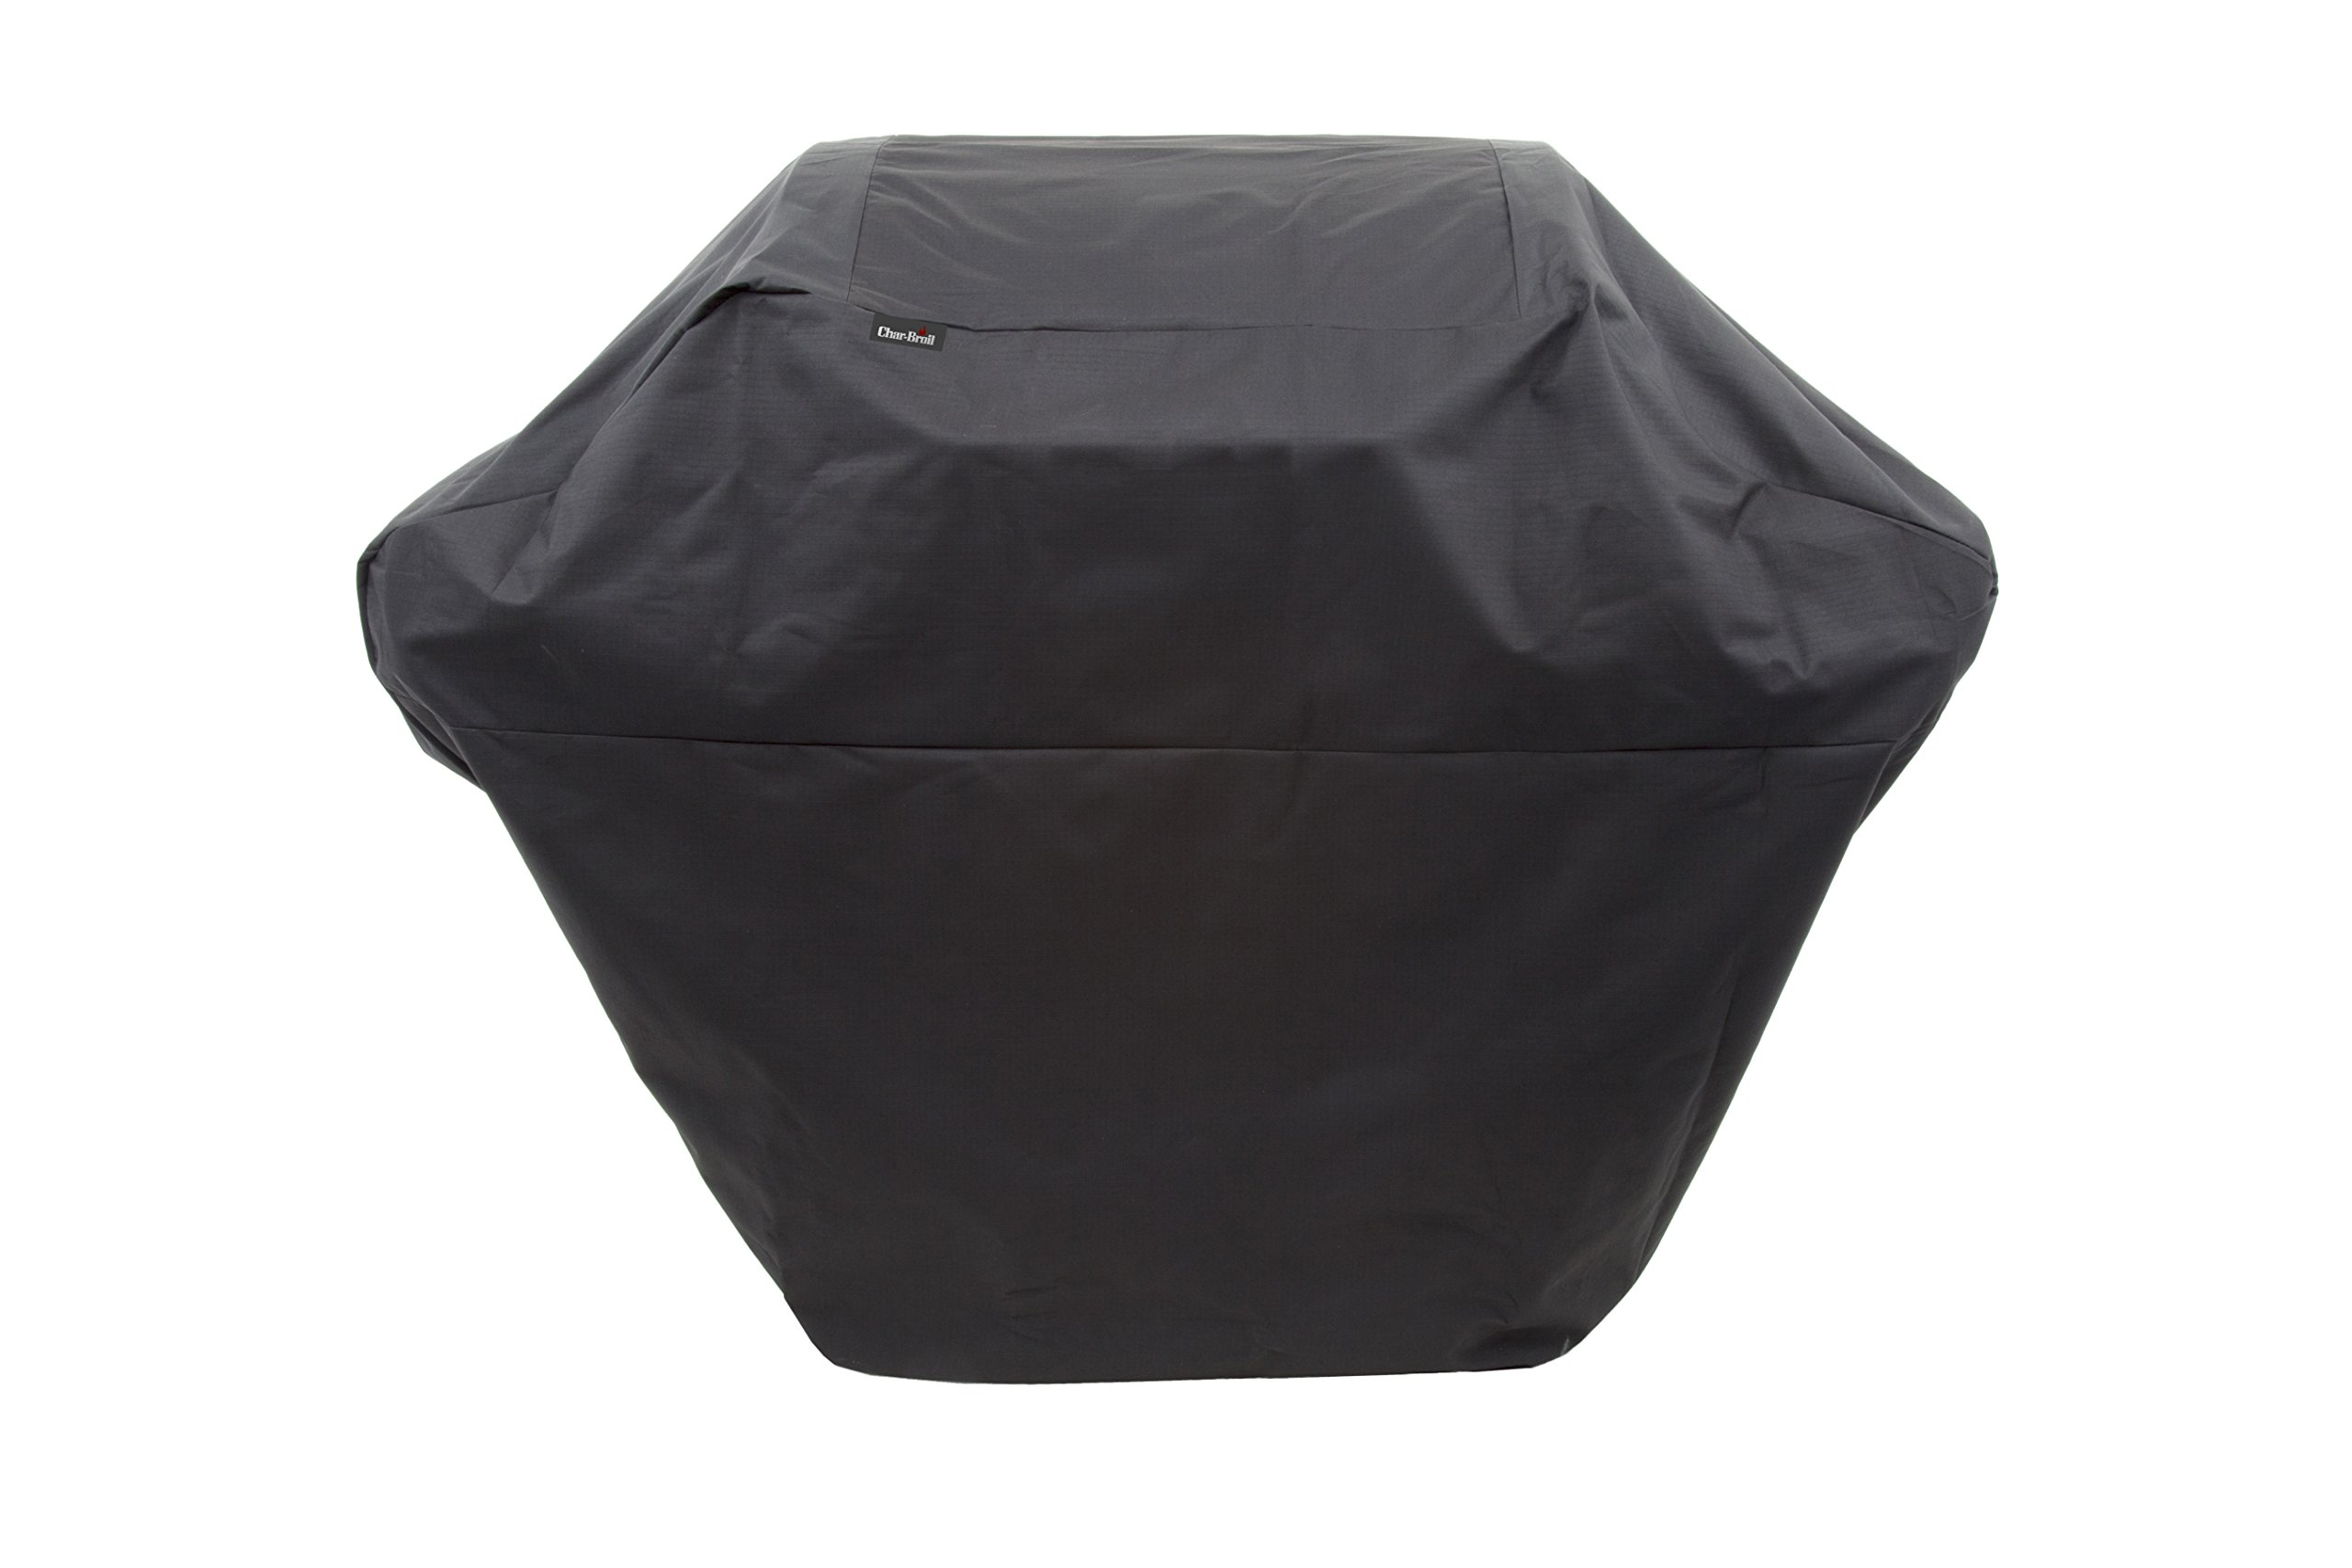 Char-Broil 2 Burner Medium Ripstop Grill Cover by Char-Broil